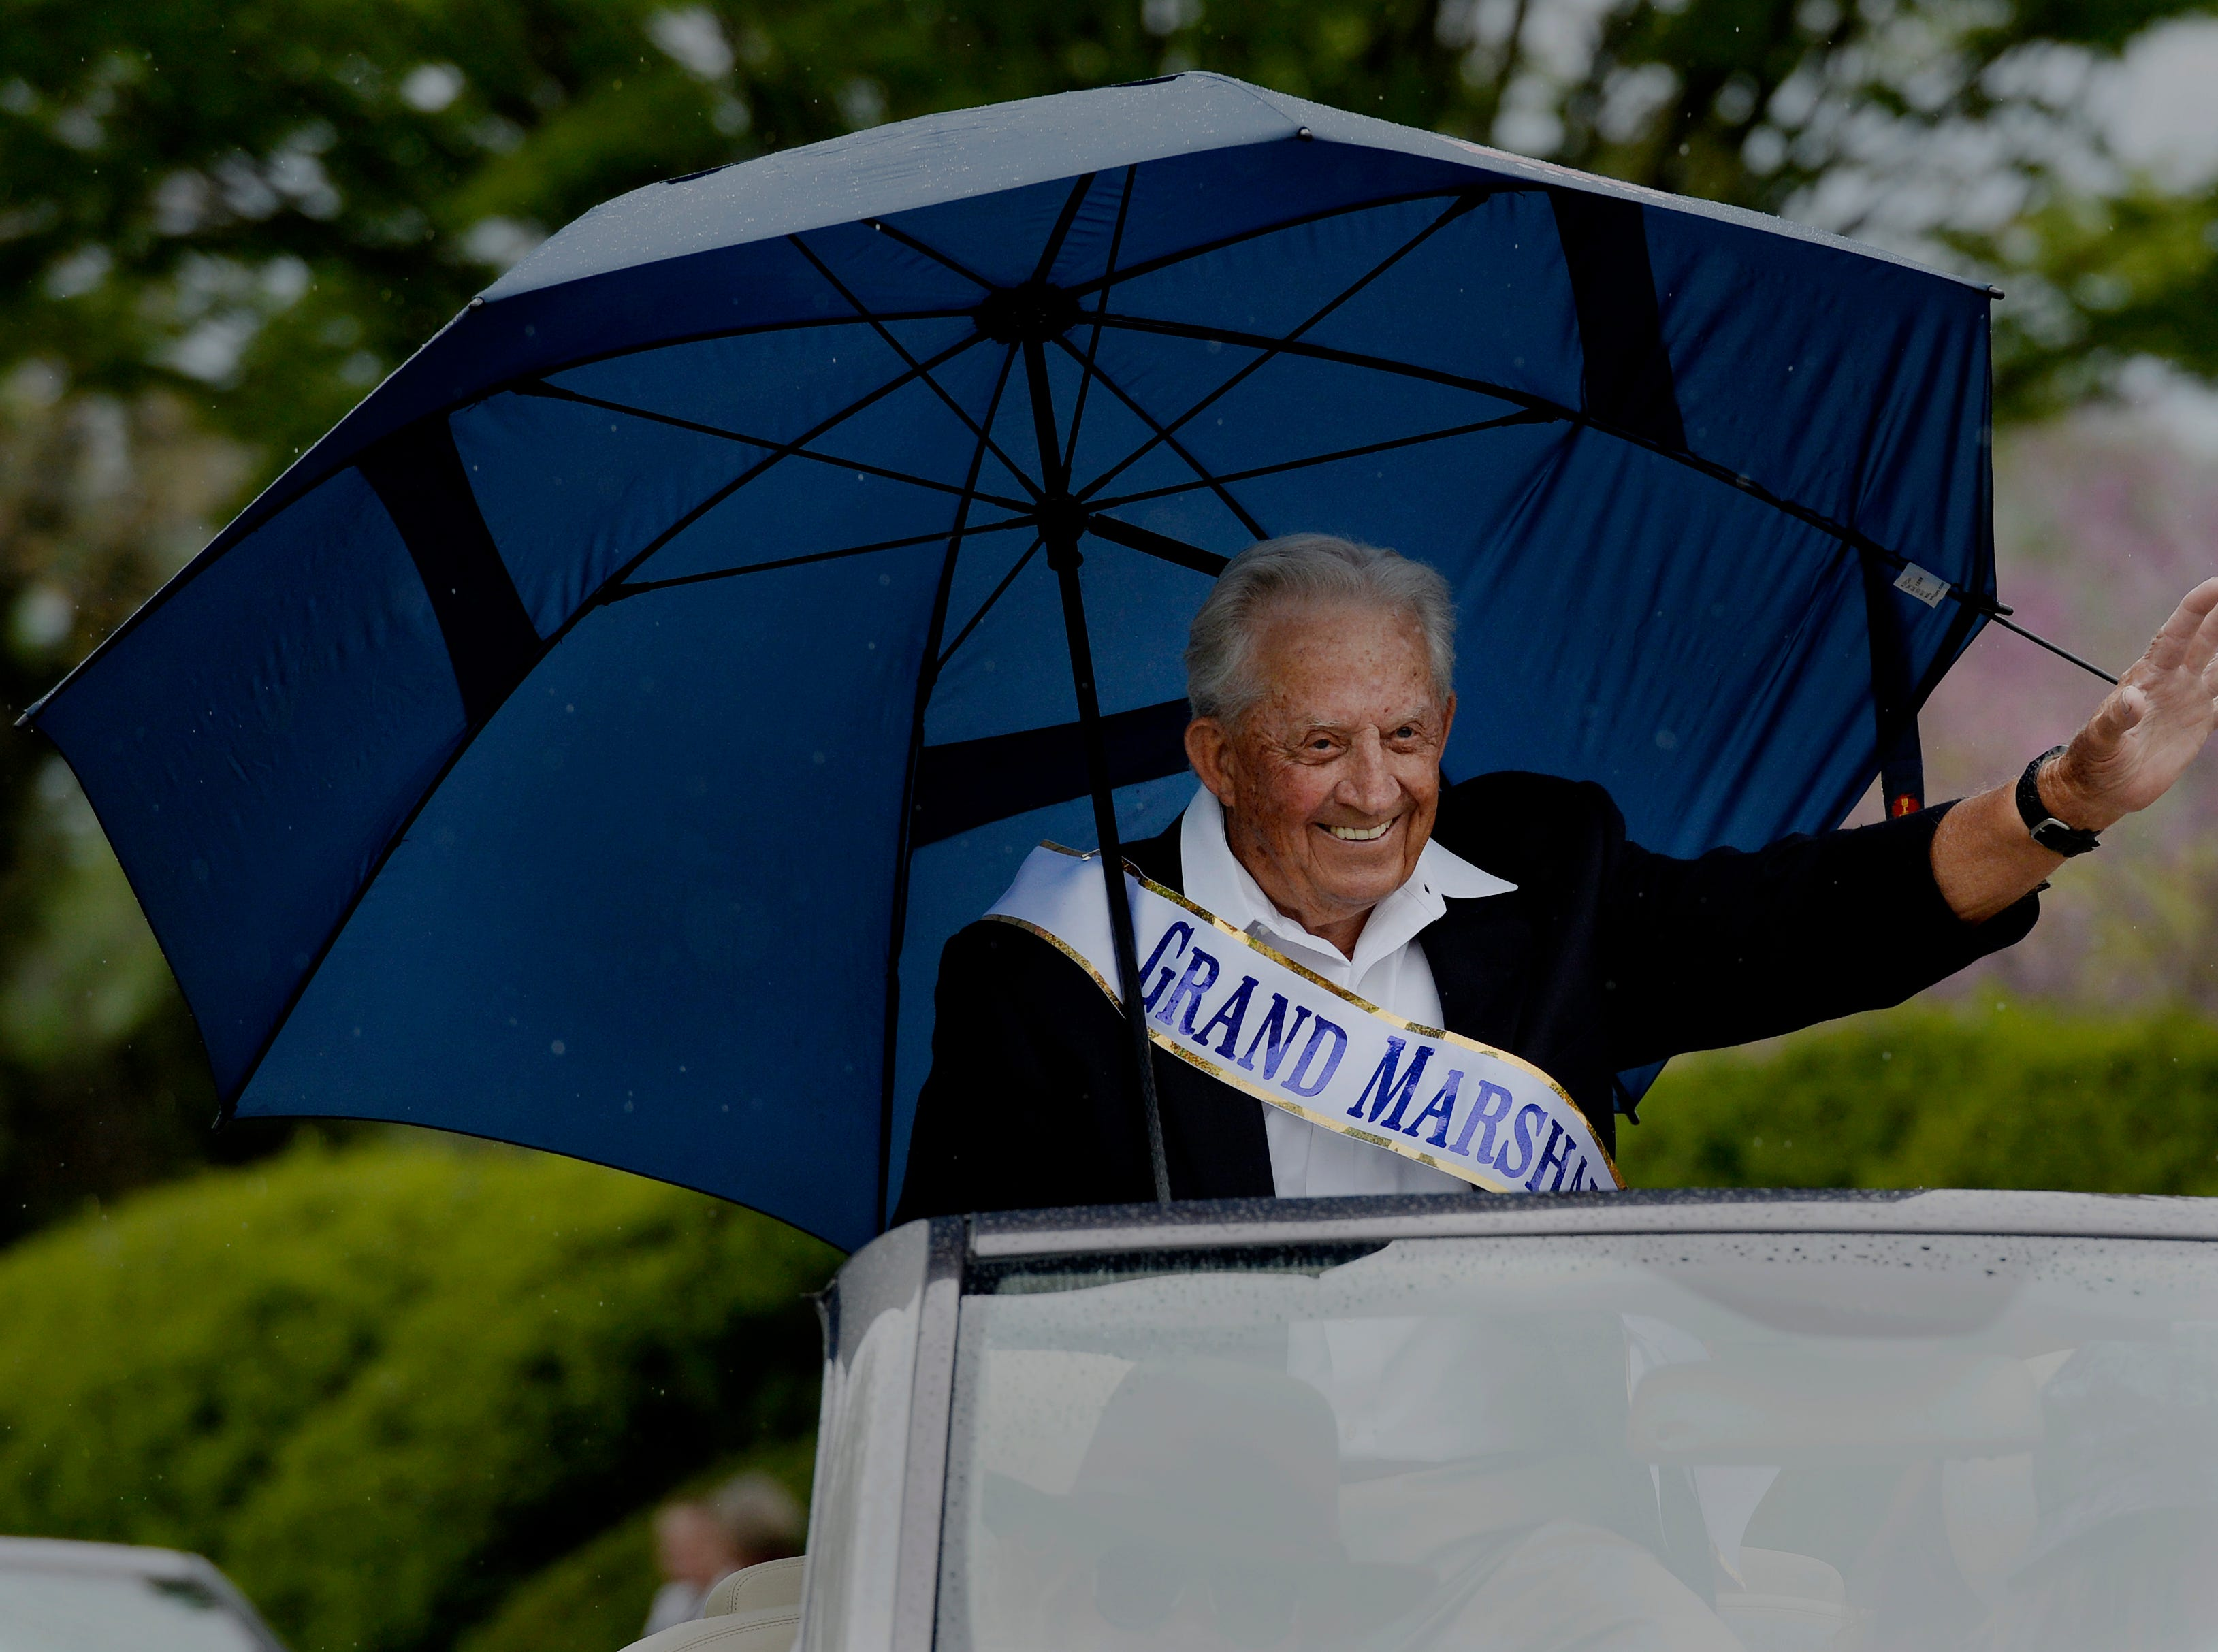 """Grand Marshal Jim Redd waves to the crowd during Brentwood's """"A Golden Gallop"""" parade celebrating its 50th year as a community on Saturday, April 13, 2019, in Brentwood, Tenn."""